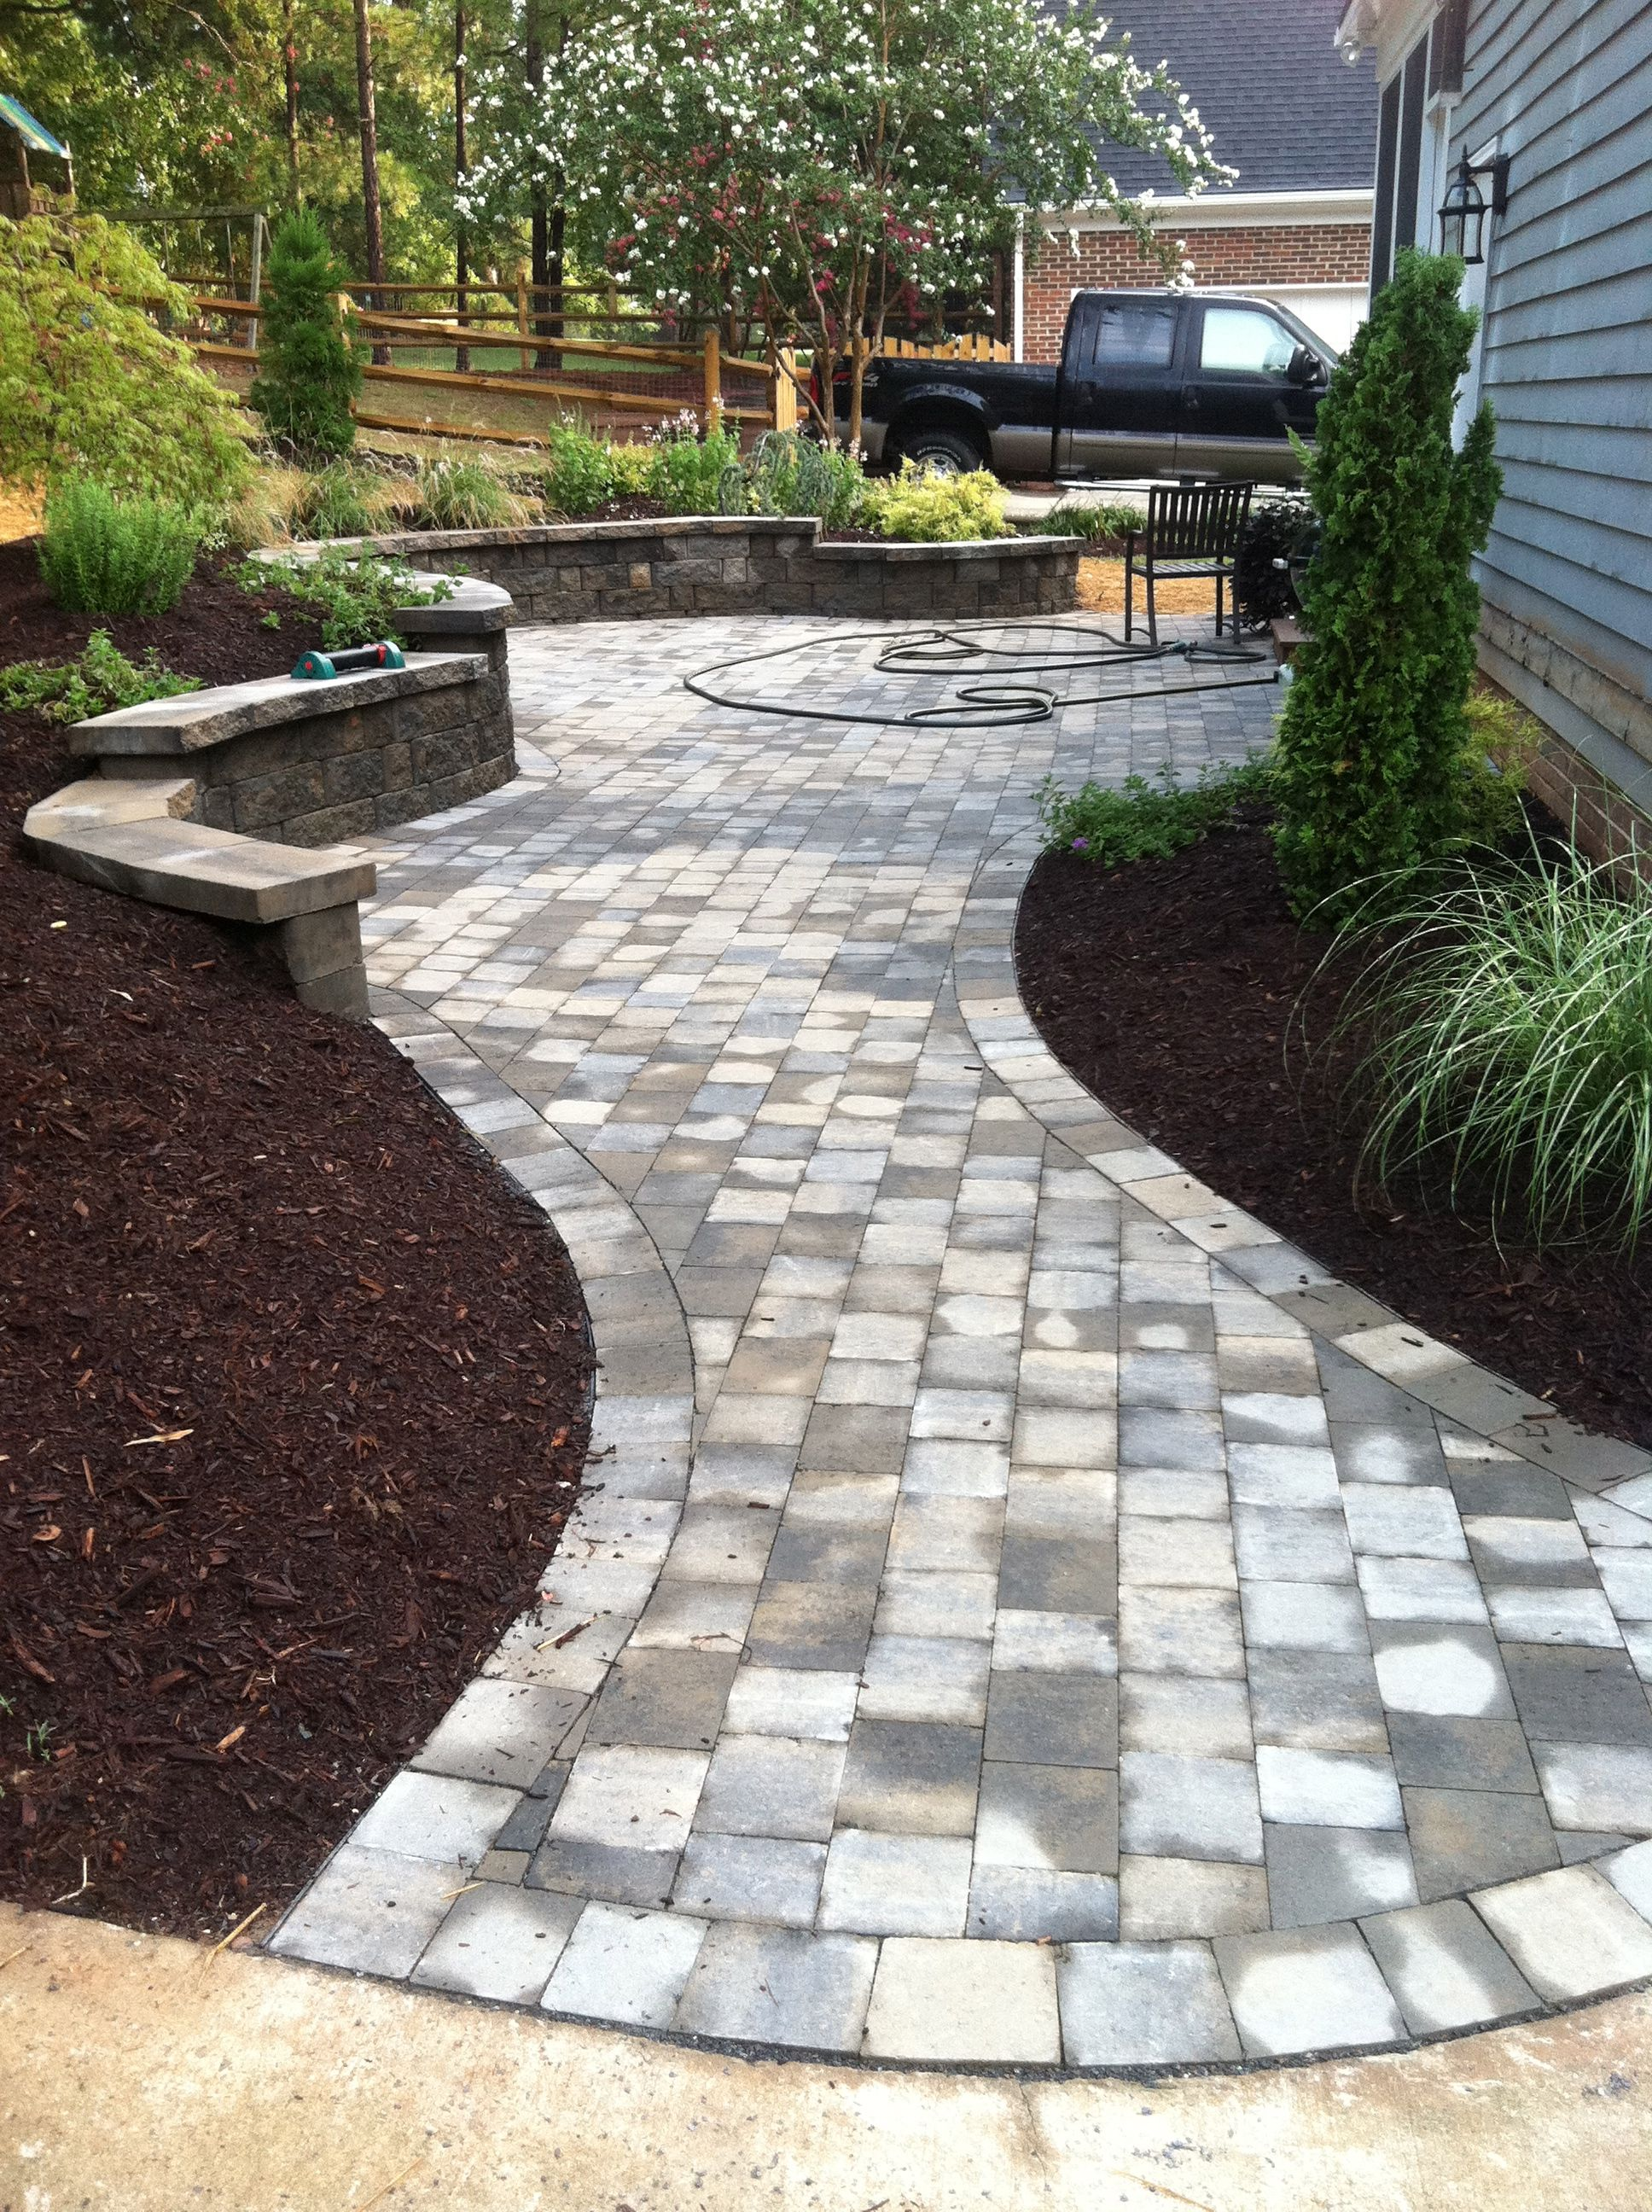 Walkway designs and patio designs paver patio walkway walkways pinterest walkways - Paver designs for backyard ...